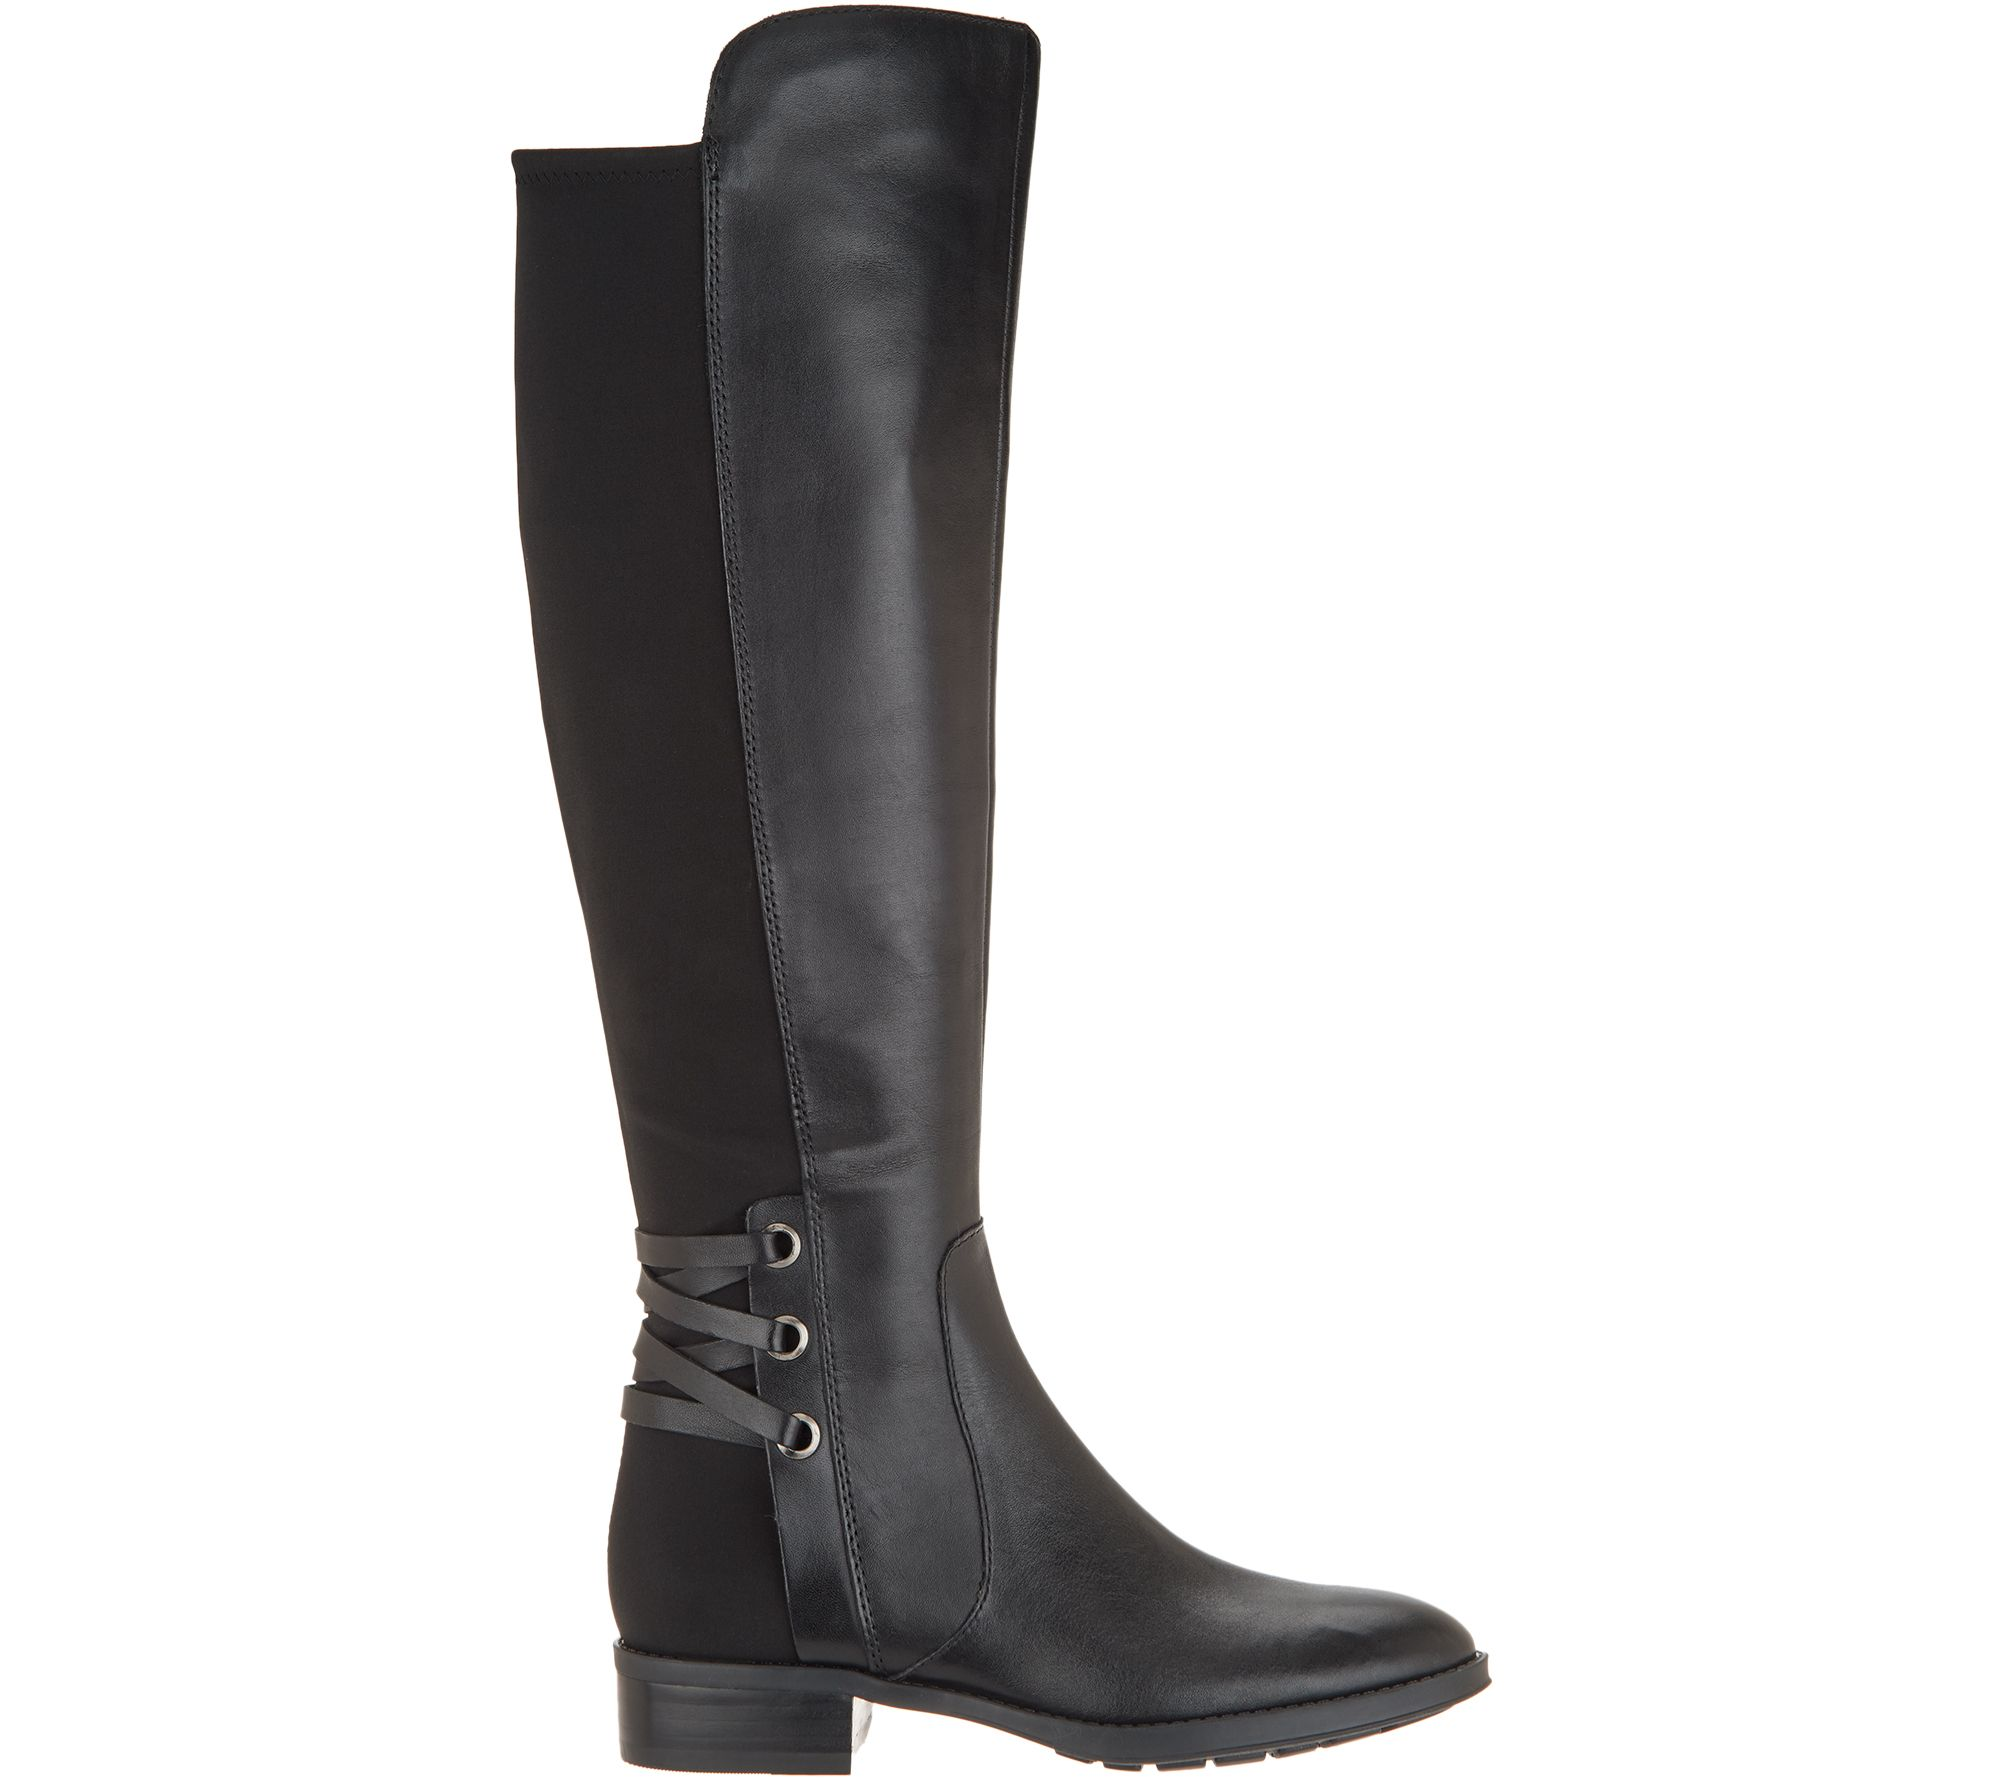 a9c7f4cf90fa Vince Camuto Wide Calf Leather or Suede Tall Shaft Boots - Page 1 — QVC.com